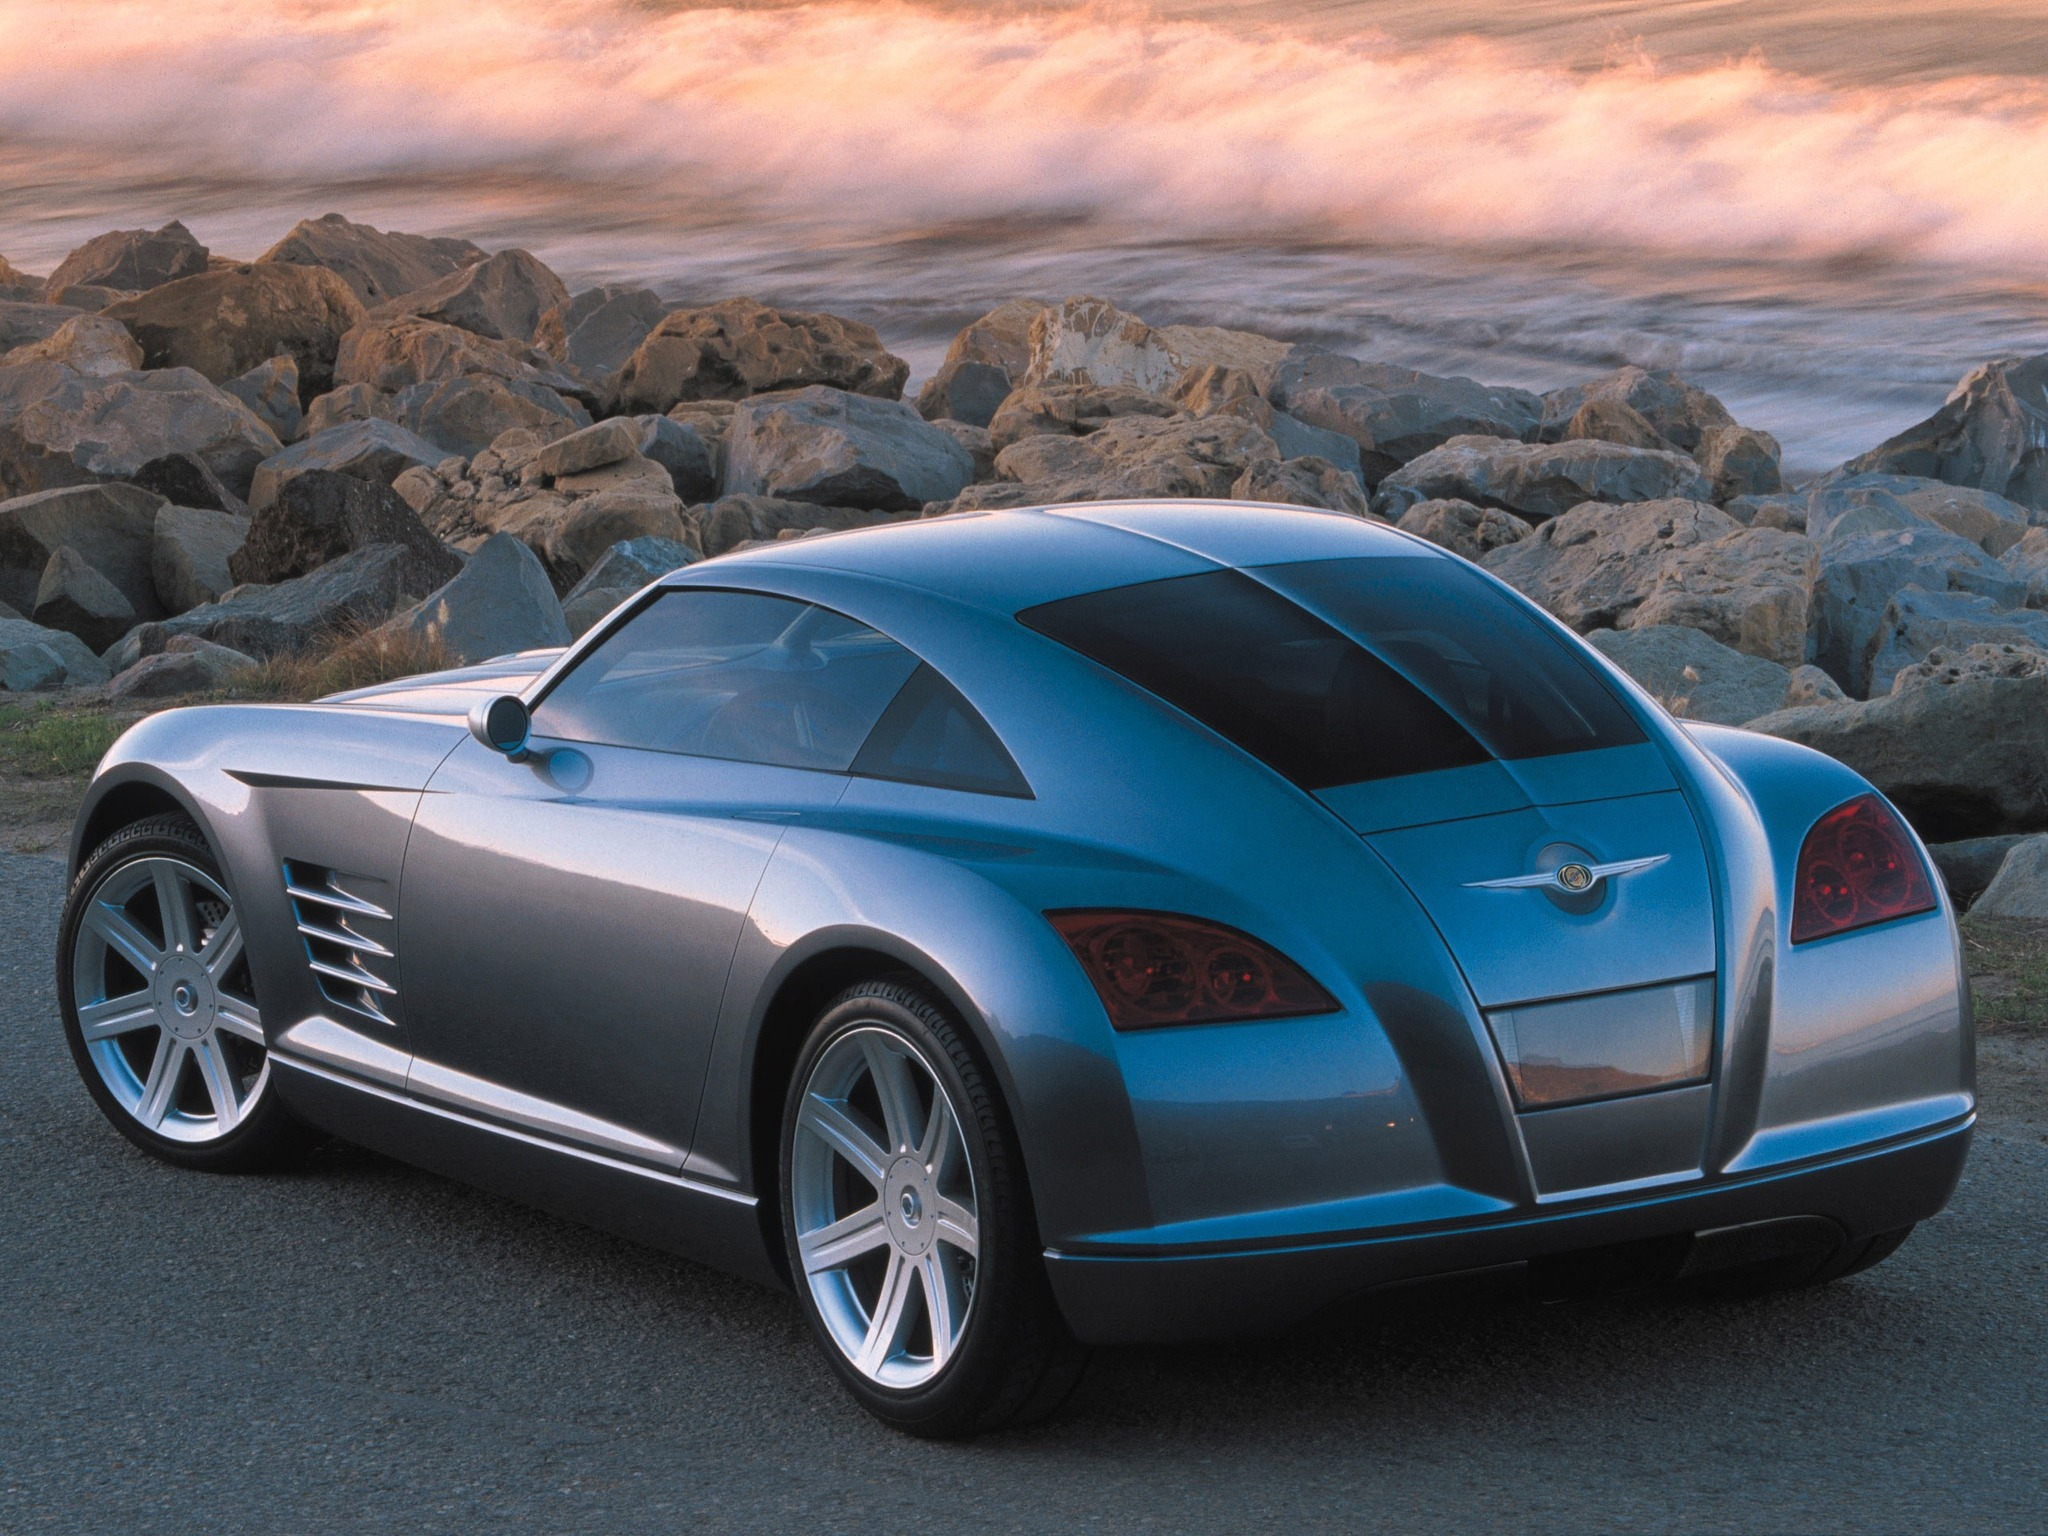 Chrysler Crossfire Concept 2001 Old Concept Cars